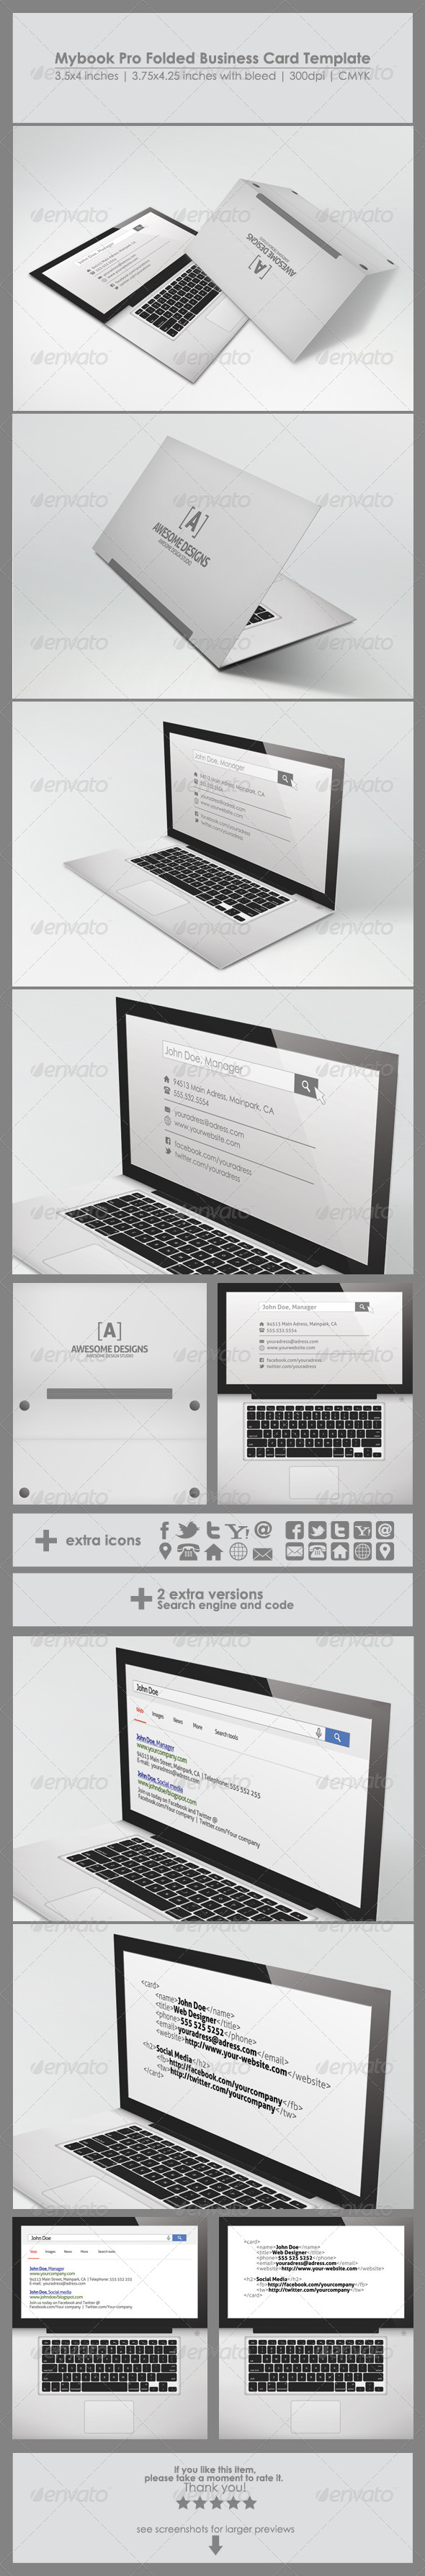 GraphicRiver Mybook Pro Folded Business Card Template 6432065